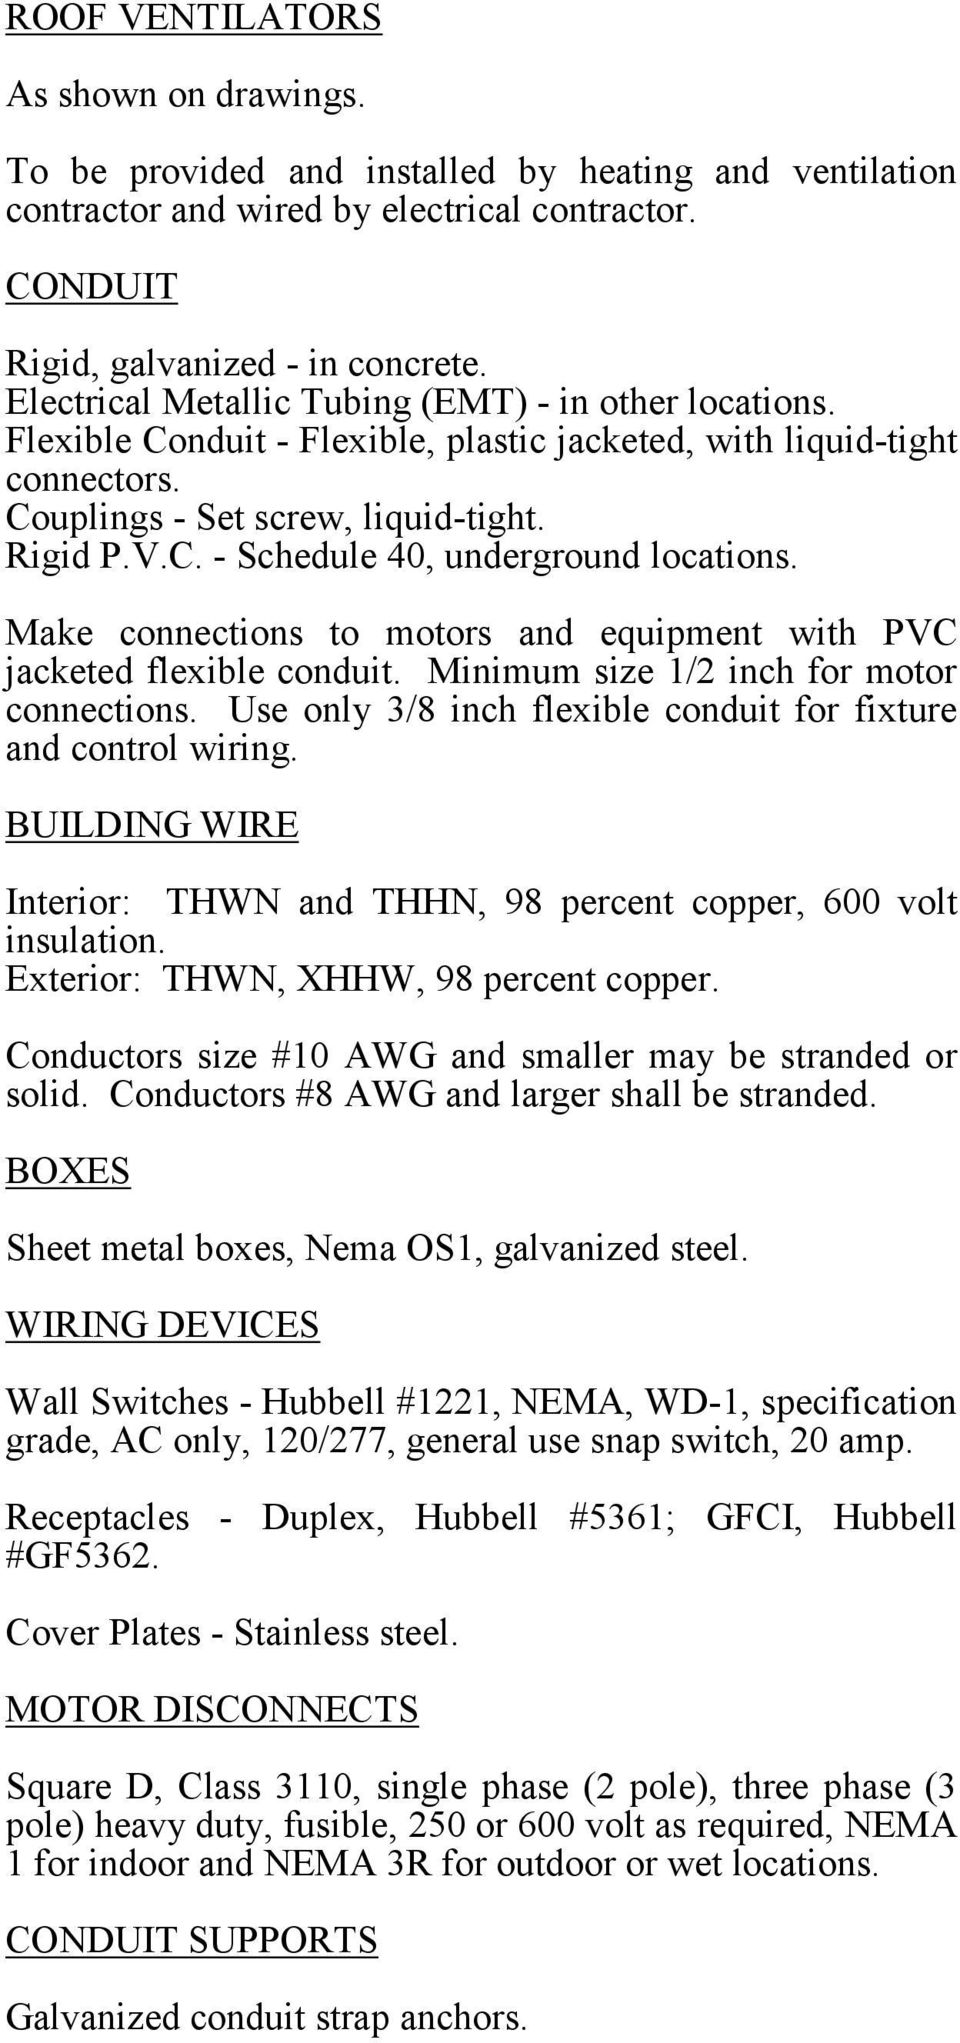 All Work Must Conform To The National Electric Code Latest Edition Electrical Installation Wiring Pictures Cctv Conduits Color Coding Make Connections Motors And Equipment With Pvc Jacketed Flexible Conduit Minimum Size 1